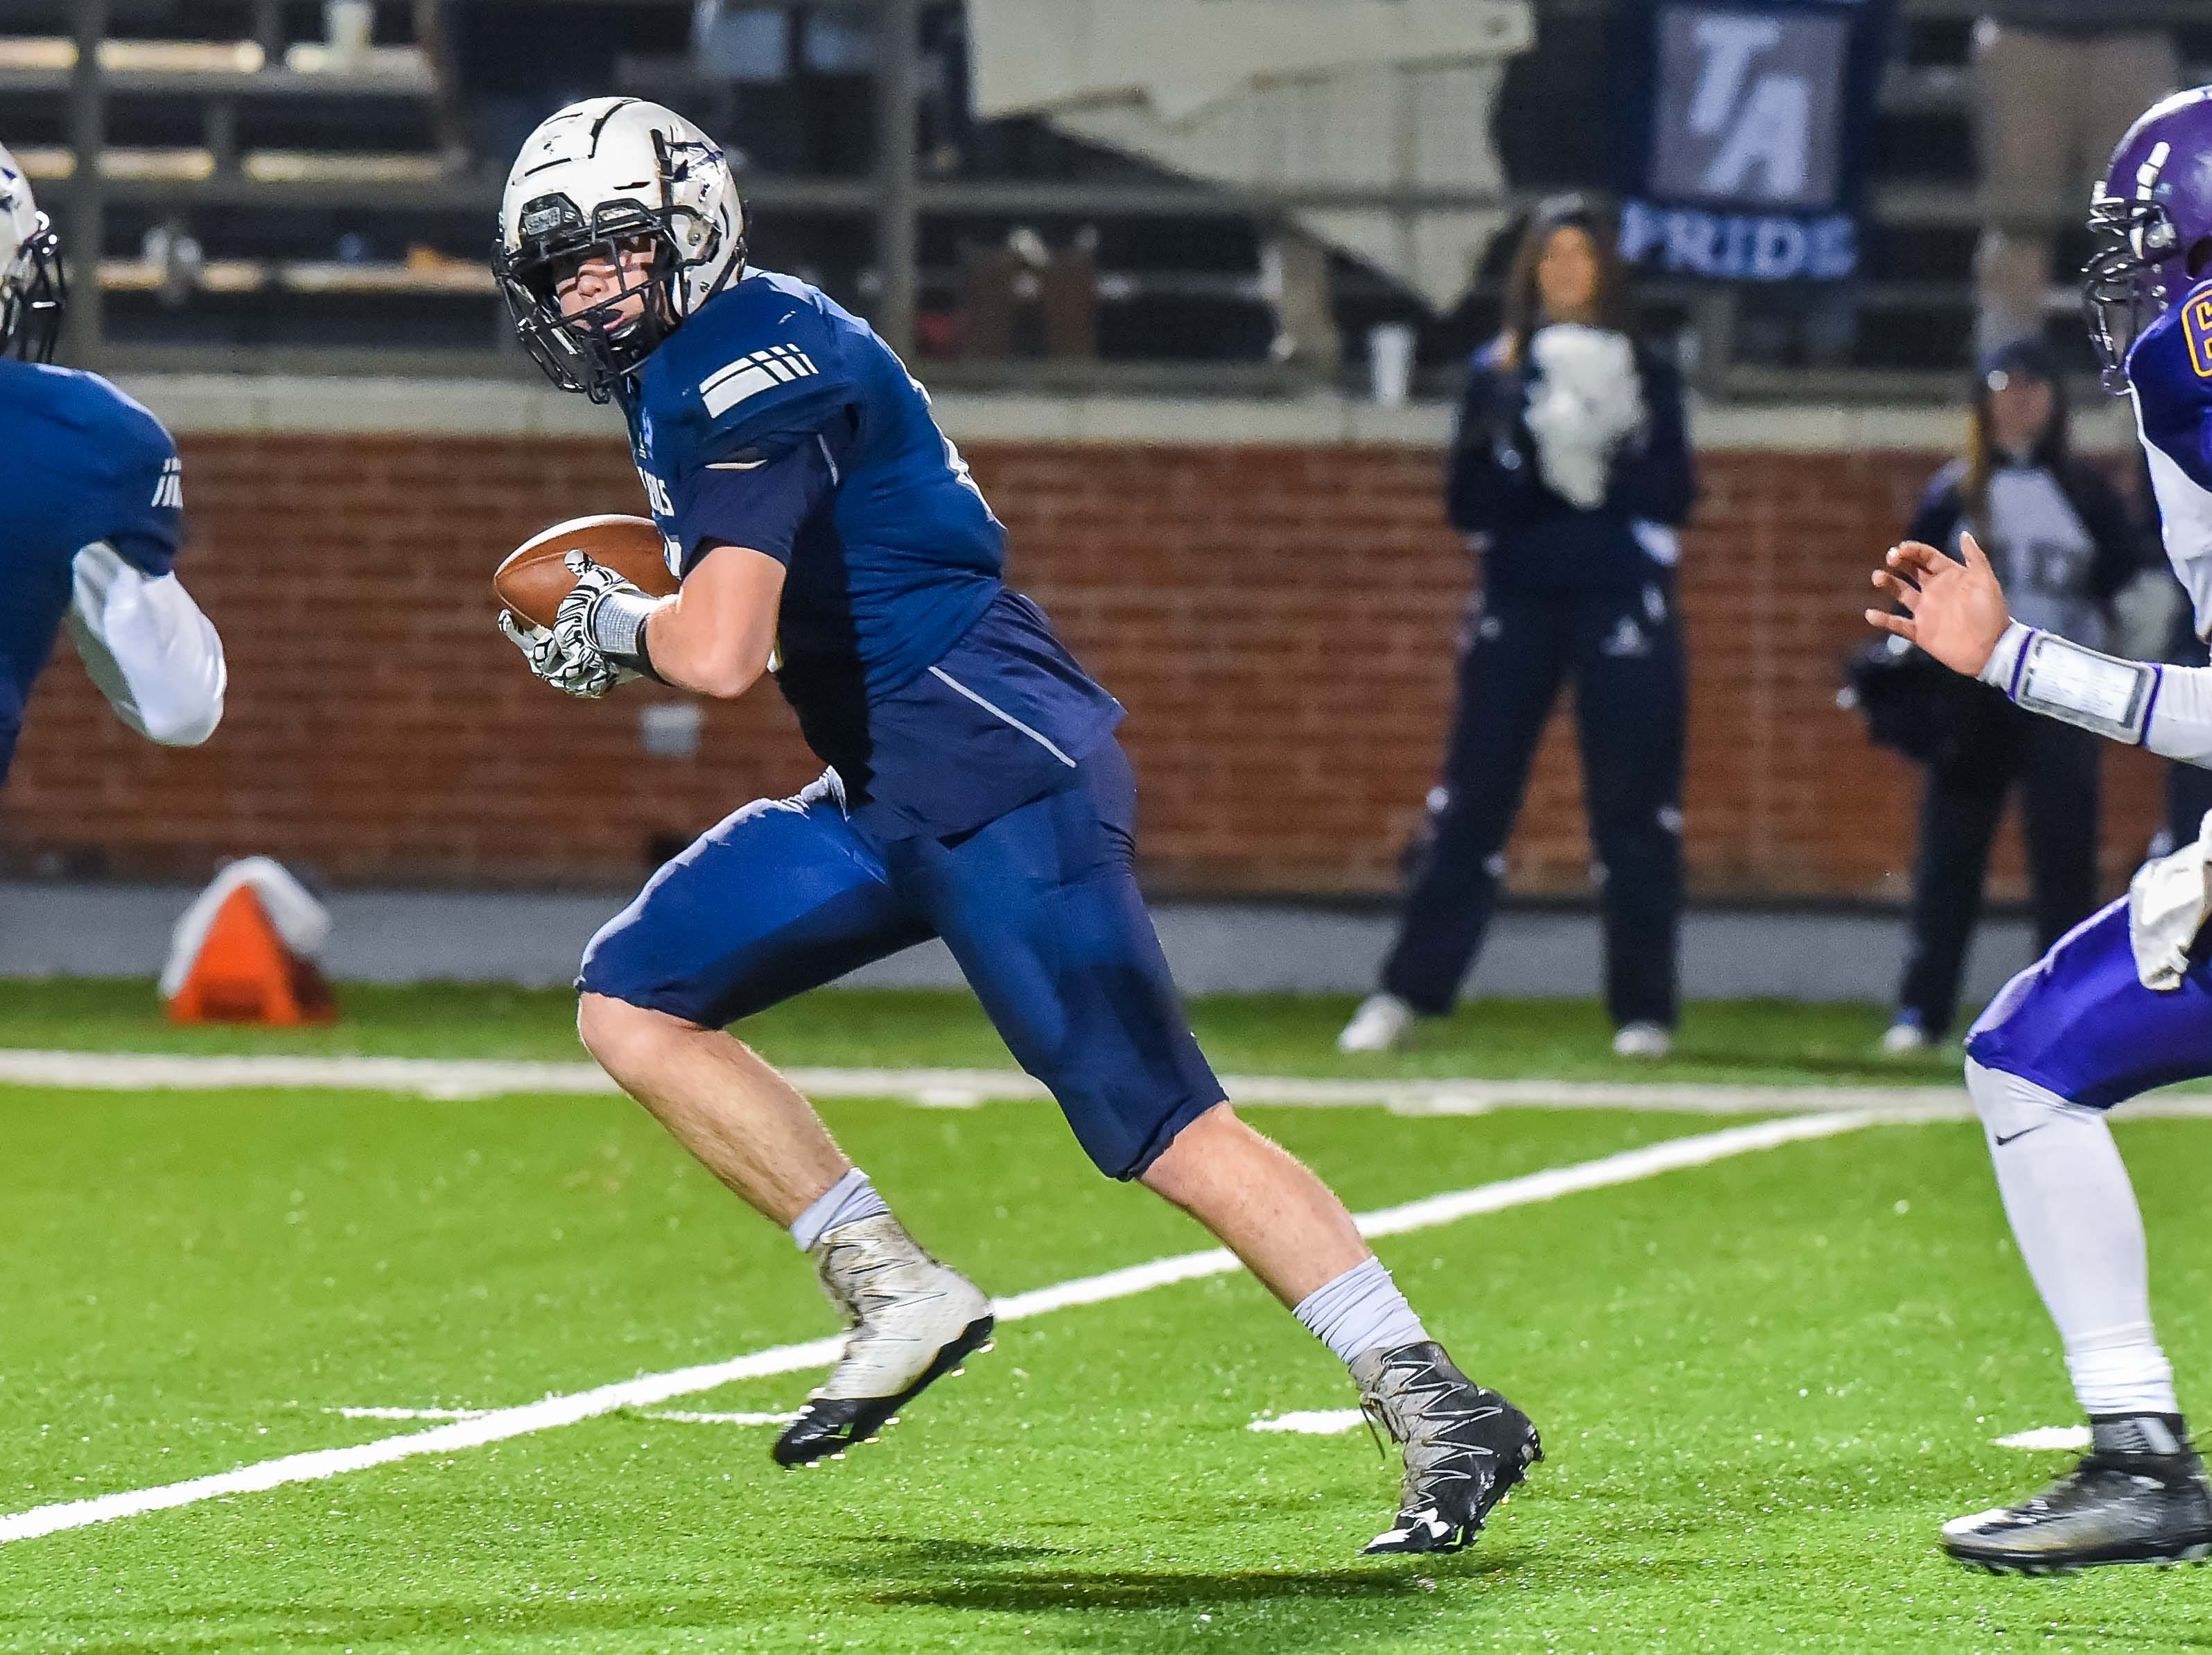 Tunica's Bailey Melton (15) catches a touchdown pass against Union Christian during the MAIS Class A Championship Football game held at Jackson Academy in Jackson, MS, Thursday November 15, 2018.(Bob Smith-For The Clarion Ledger)